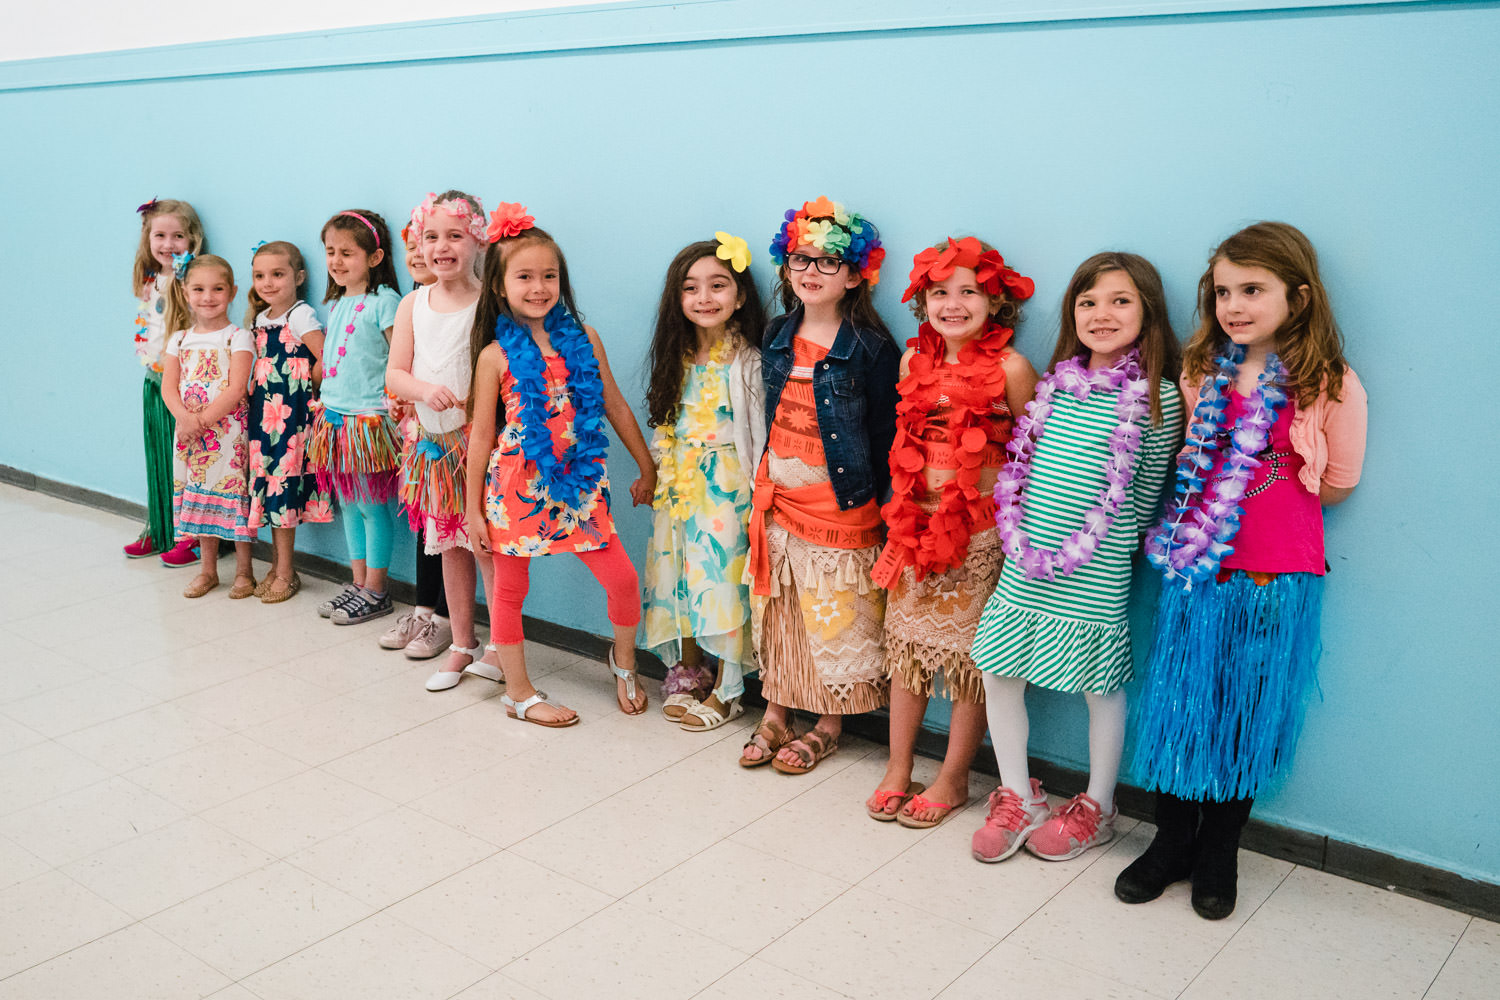 Little girls stand in a hallway dressed for a luau.